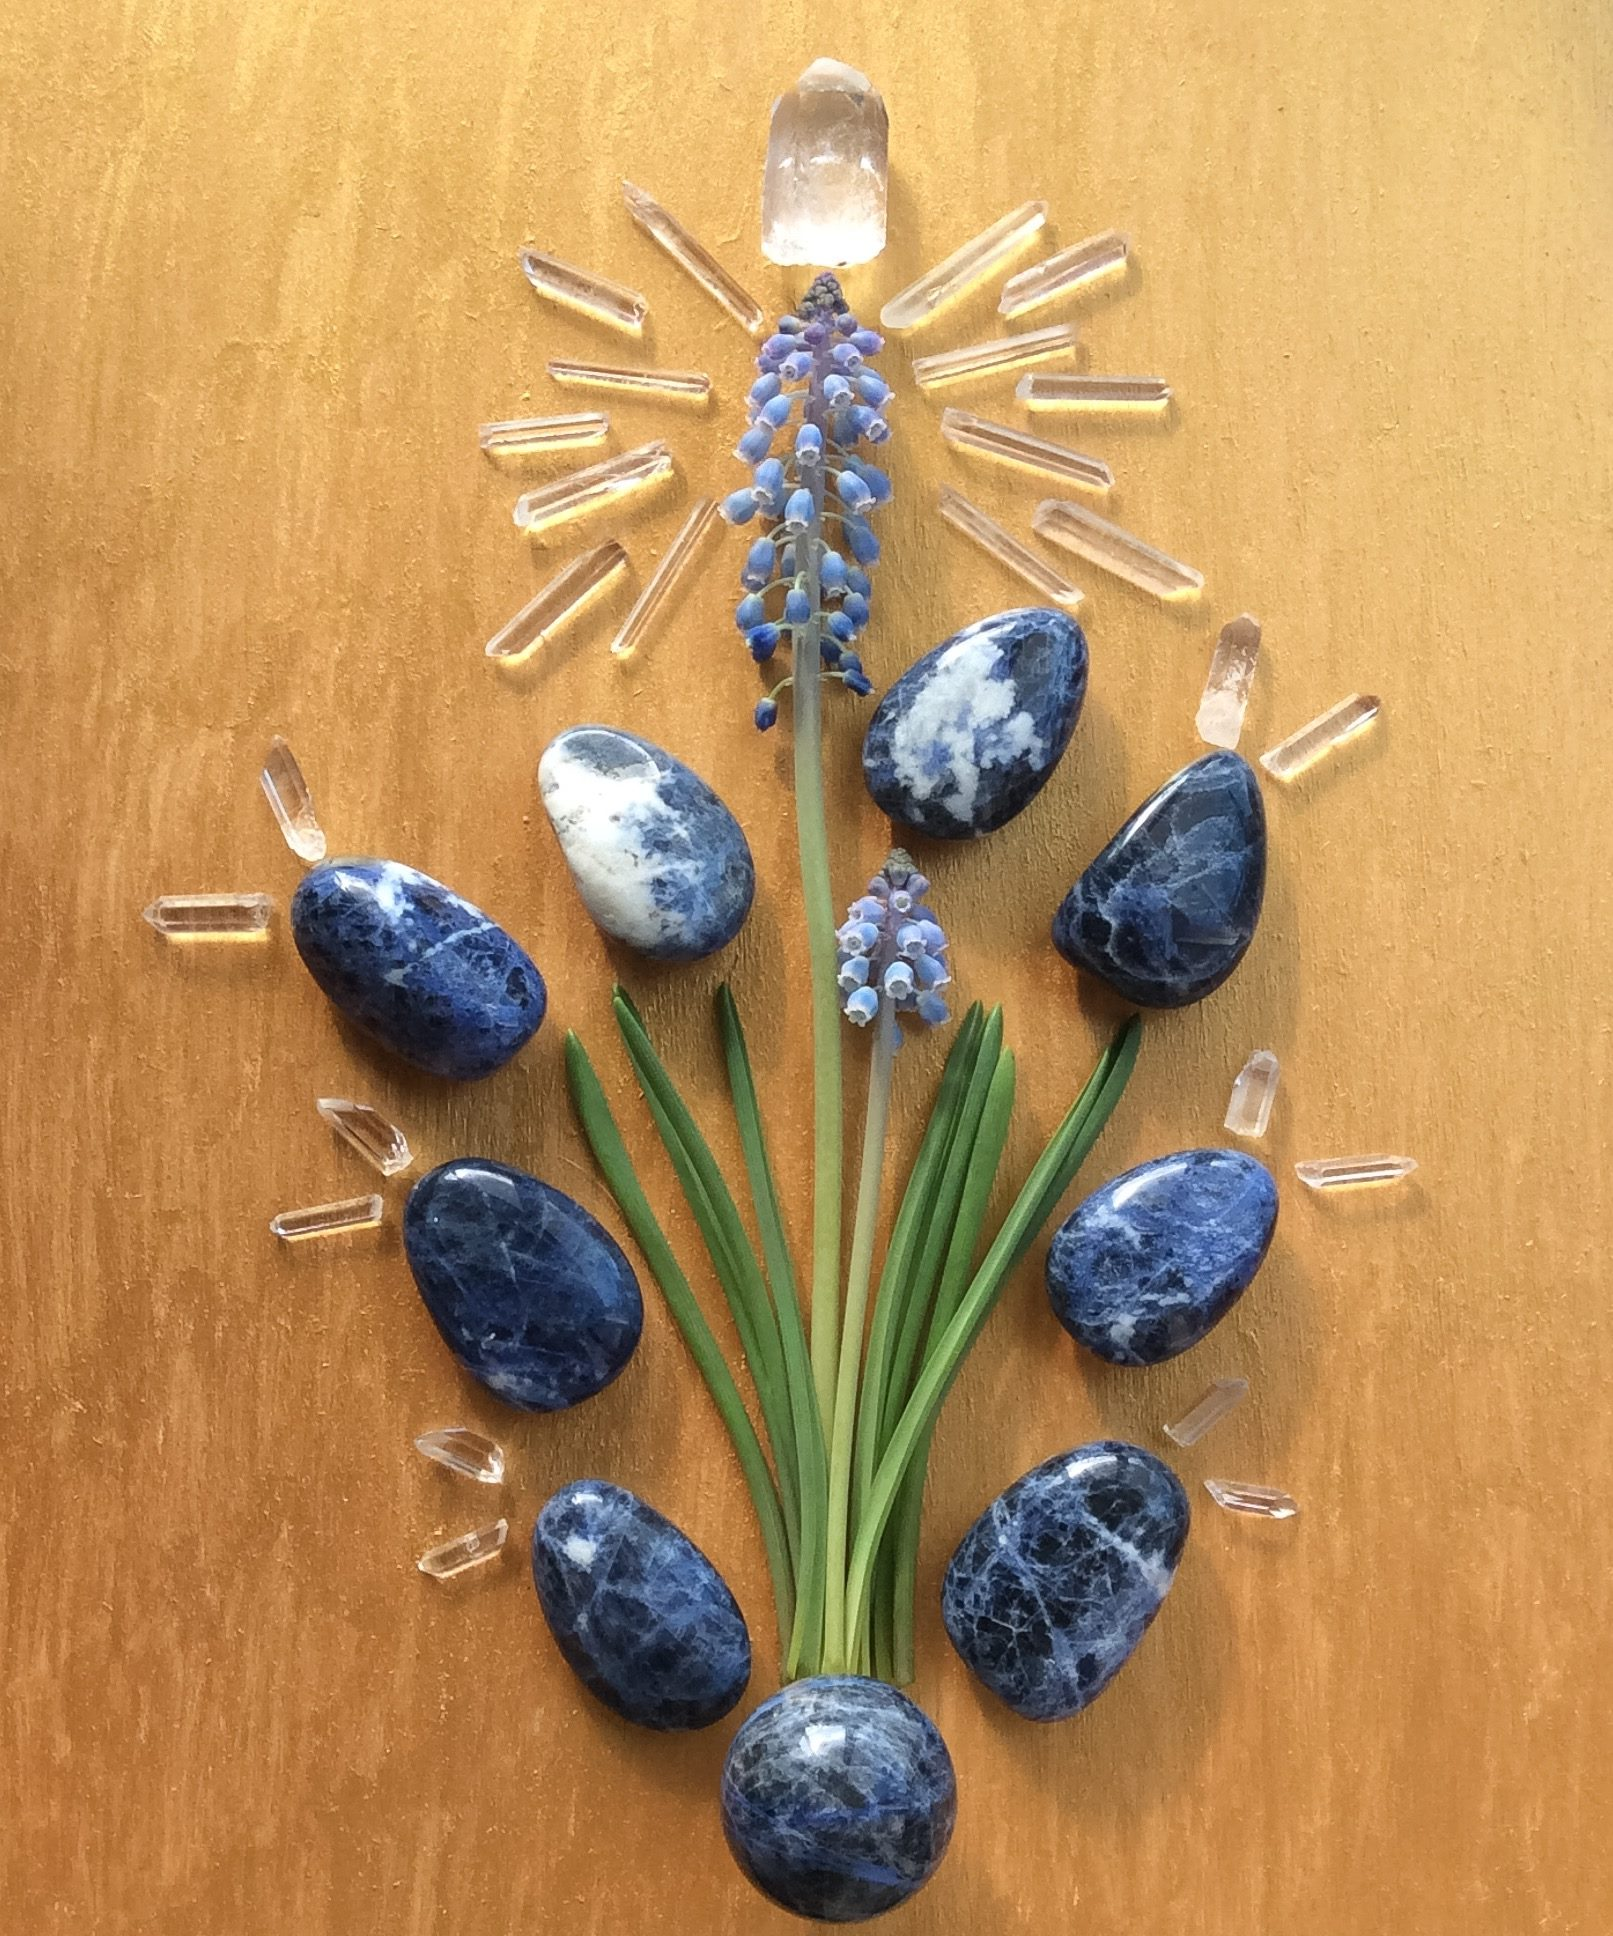 Sodalite, Quartz and Muscari